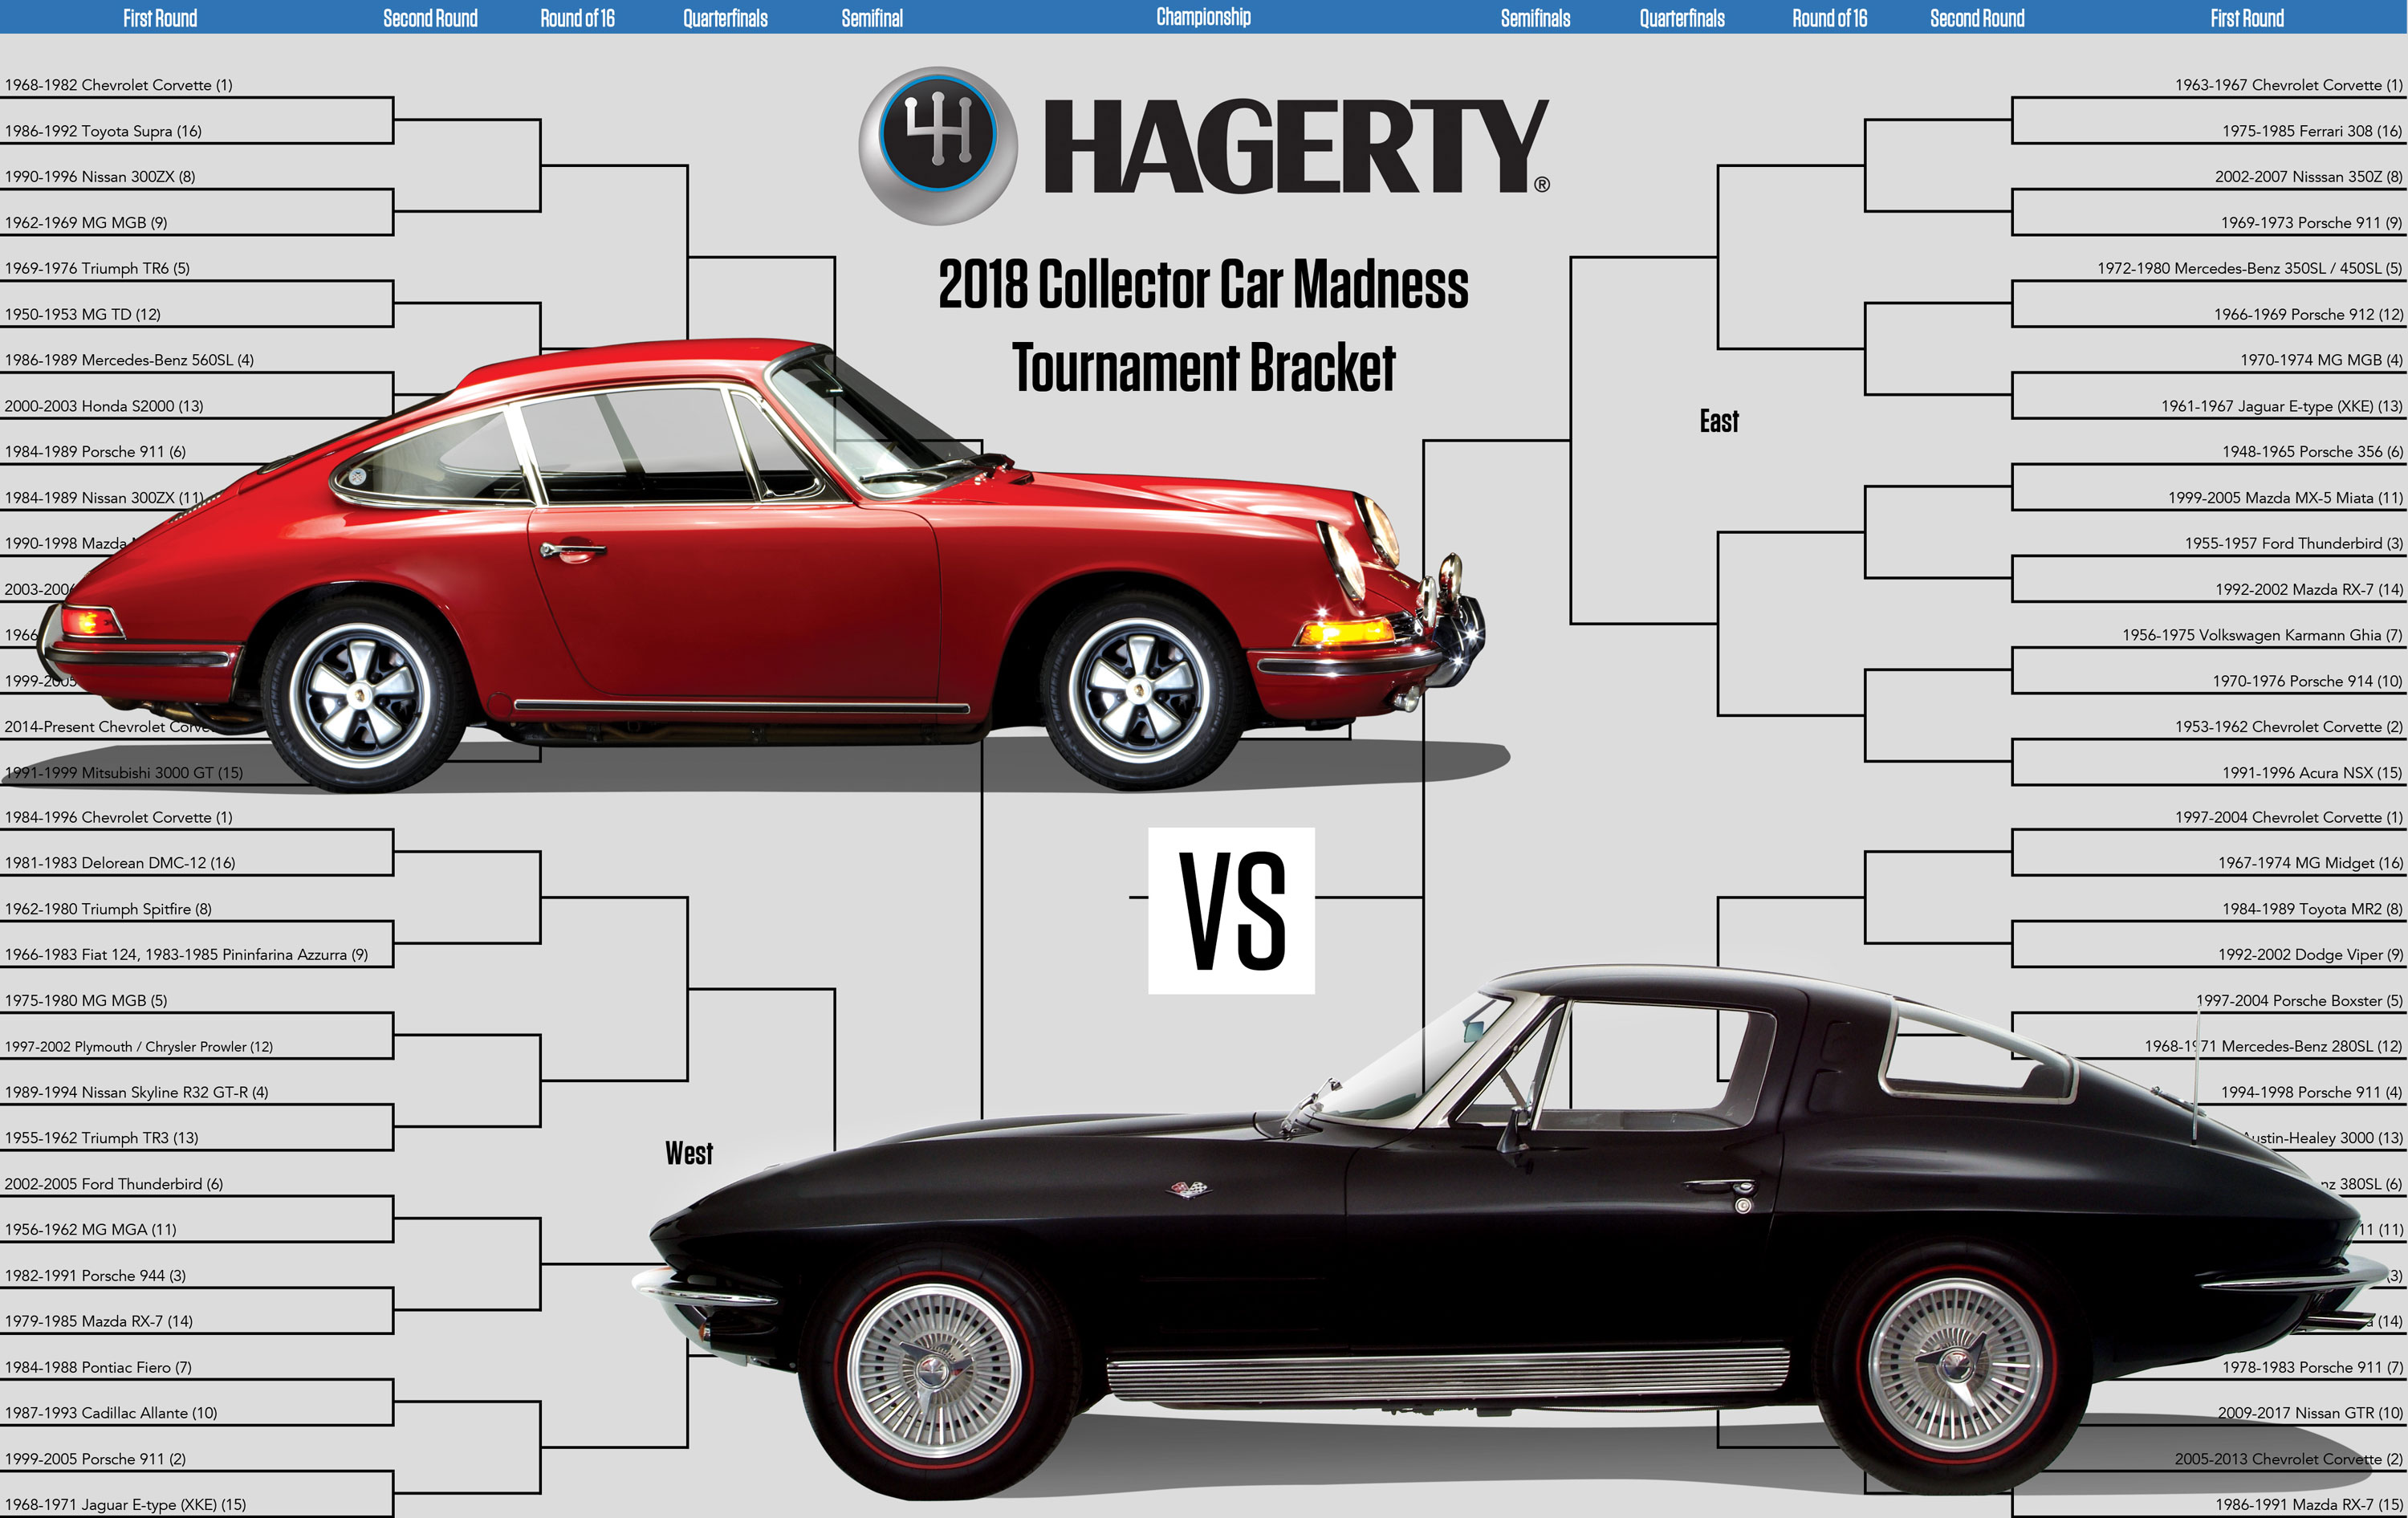 Here is your 2018 Collector Car Madness bracket thumbnail